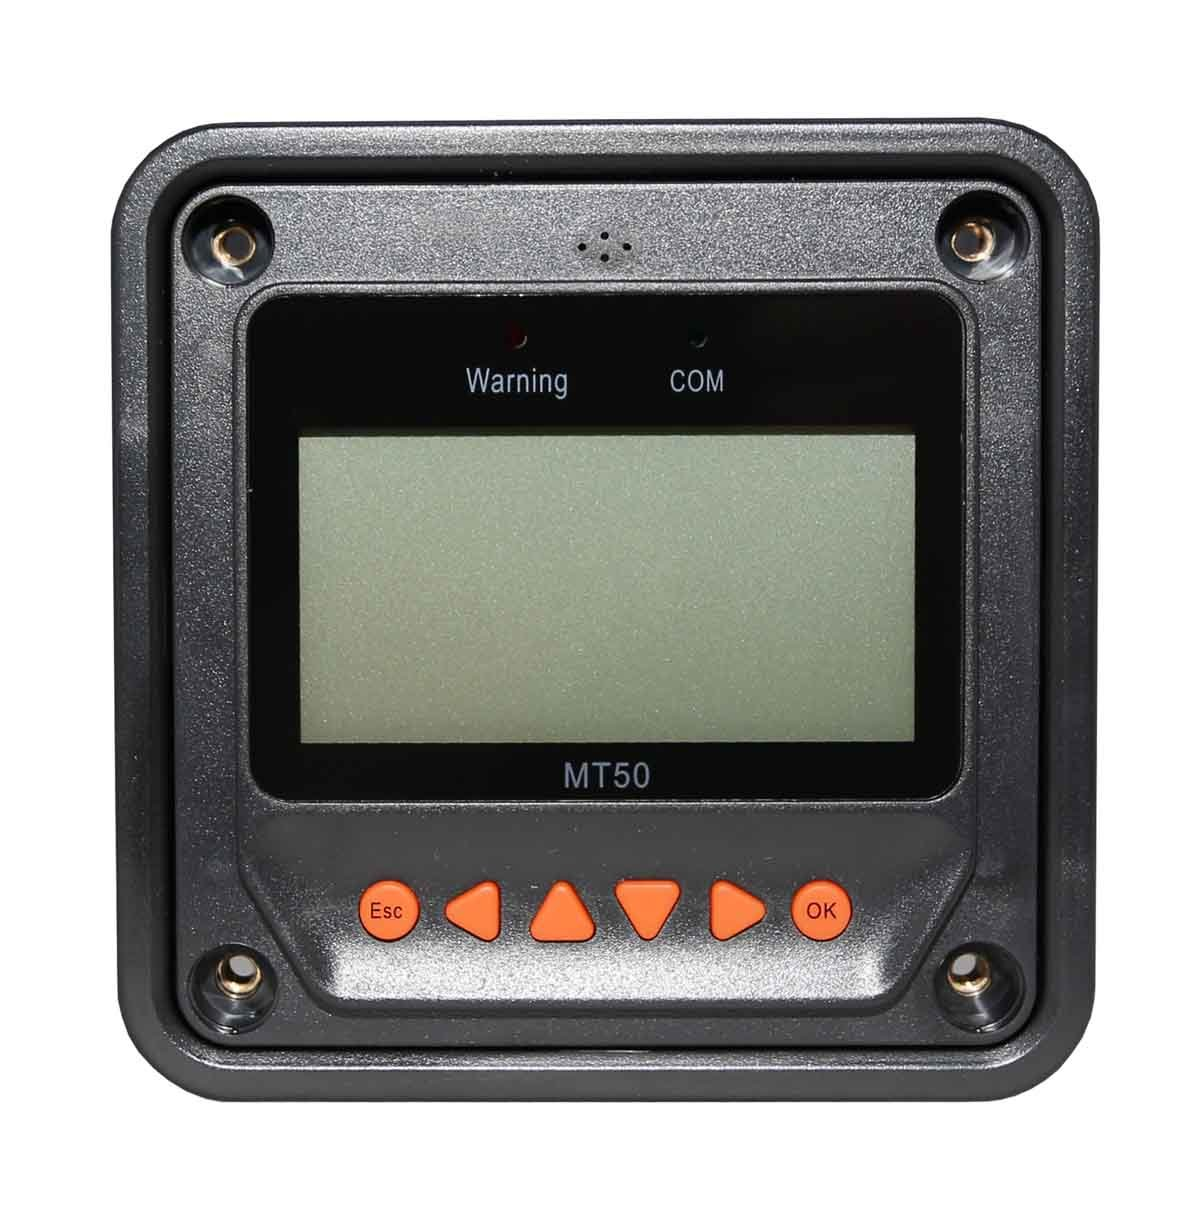 10A EPEver Tracer Series MPPT Solar Charge Controller Ultra Fast Power Point Tracking with Kit 60v